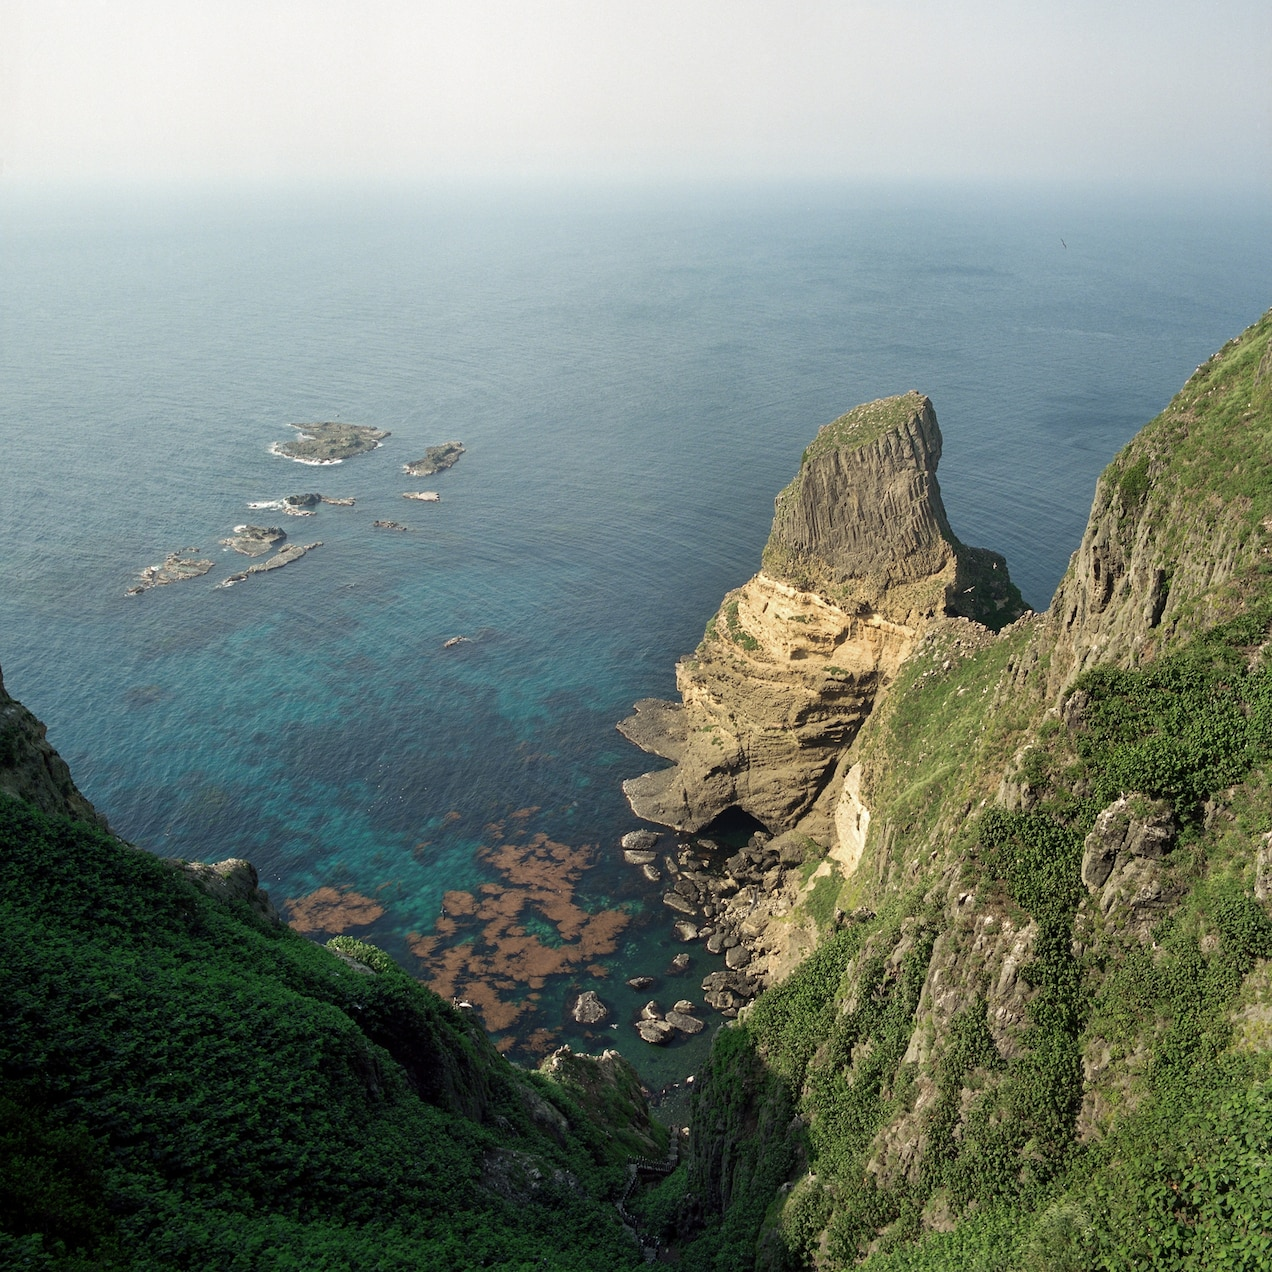 The west island is inhabitable because of the steep, vertical rocks.